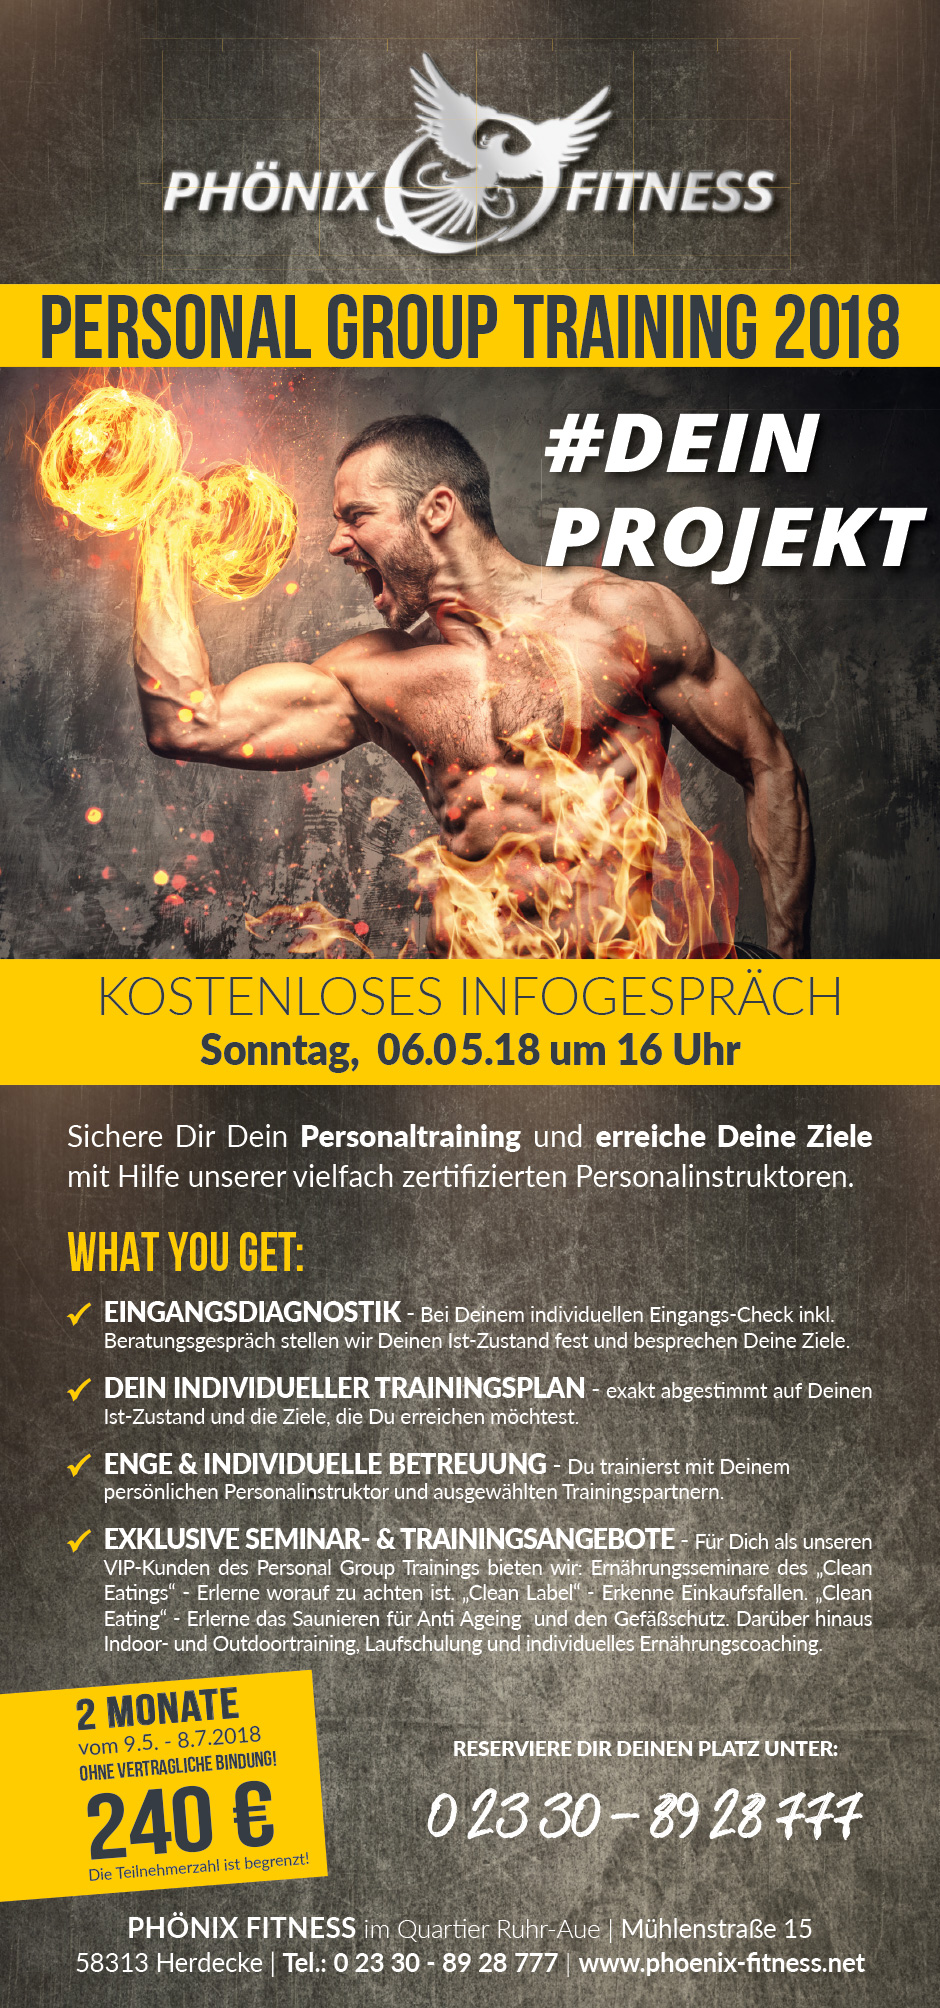 Flyer_PersonalGroup_2018_fire_Fly-2